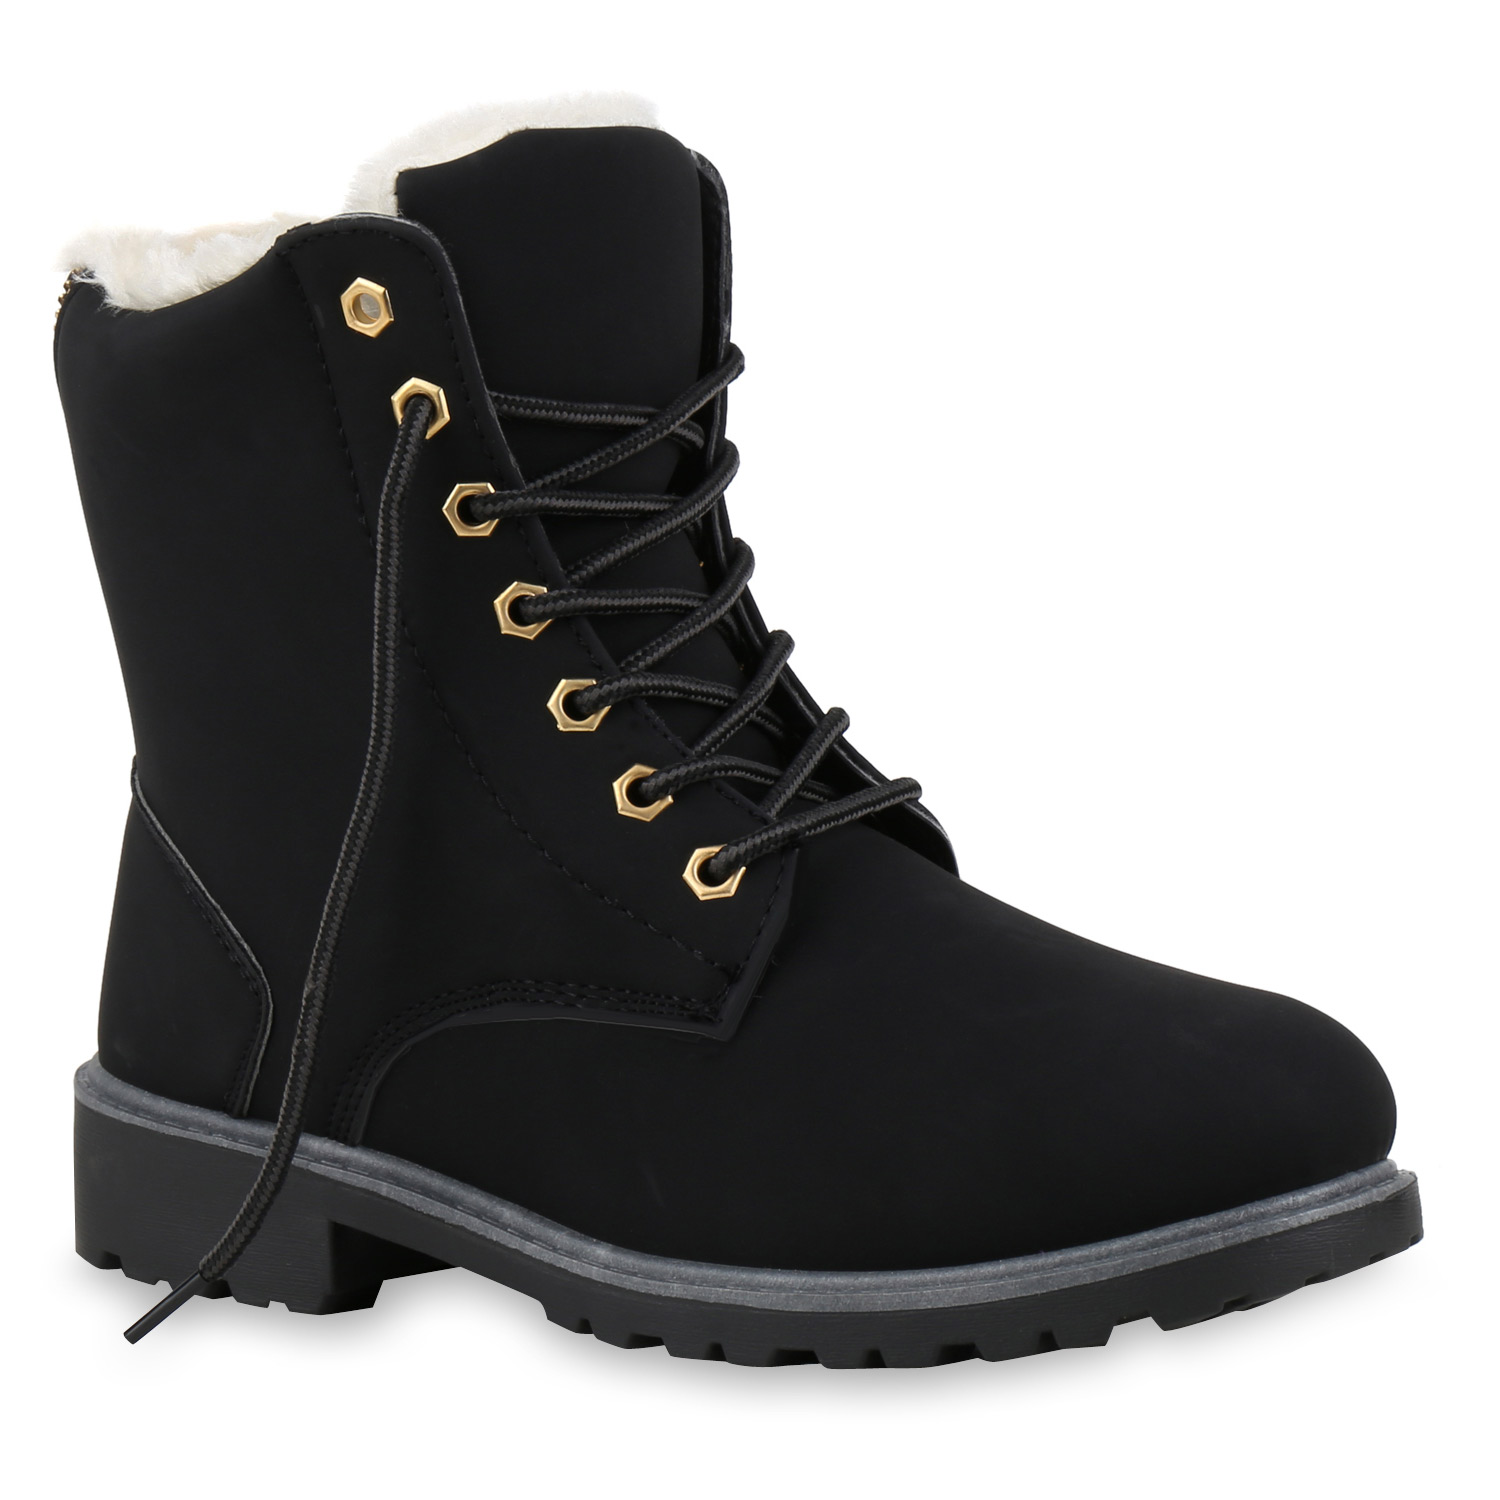 worker boots damen herren outdoor stiefeletten zipper warm. Black Bedroom Furniture Sets. Home Design Ideas